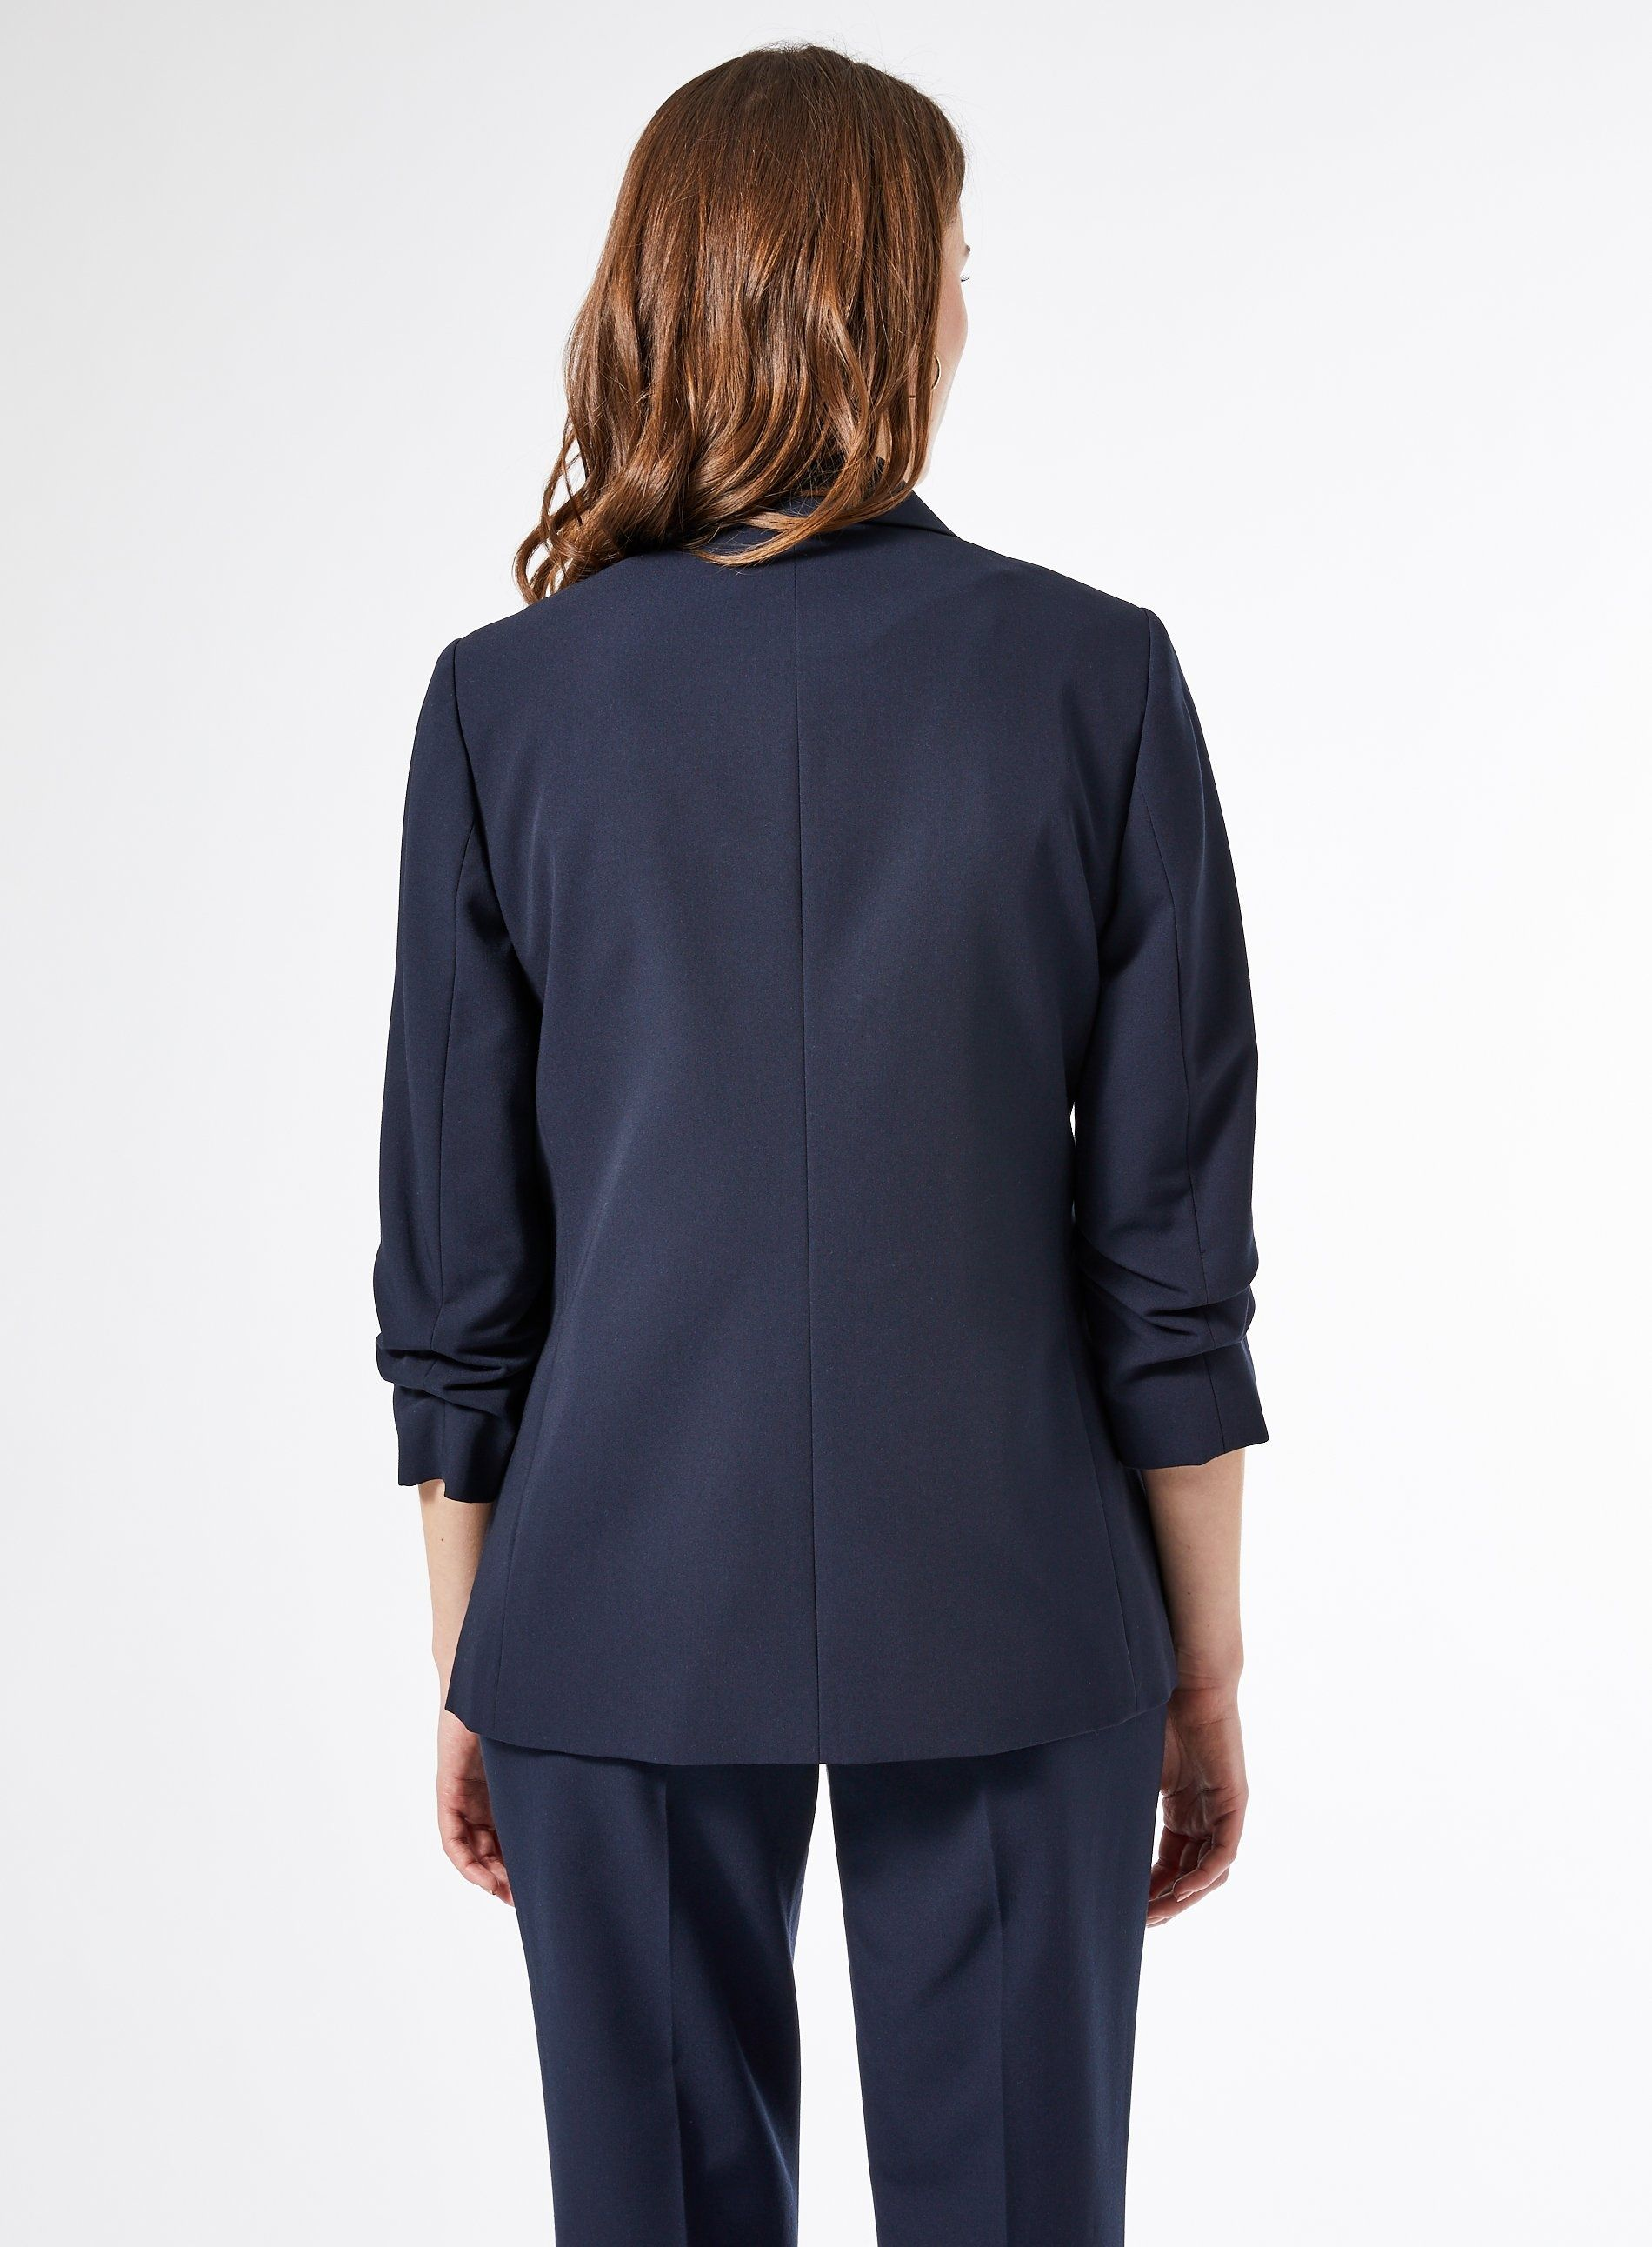 Dorothy Perkins Womens Blue 3/4 Ruched Sleeve Blazer Jacket Tailored Outerwear